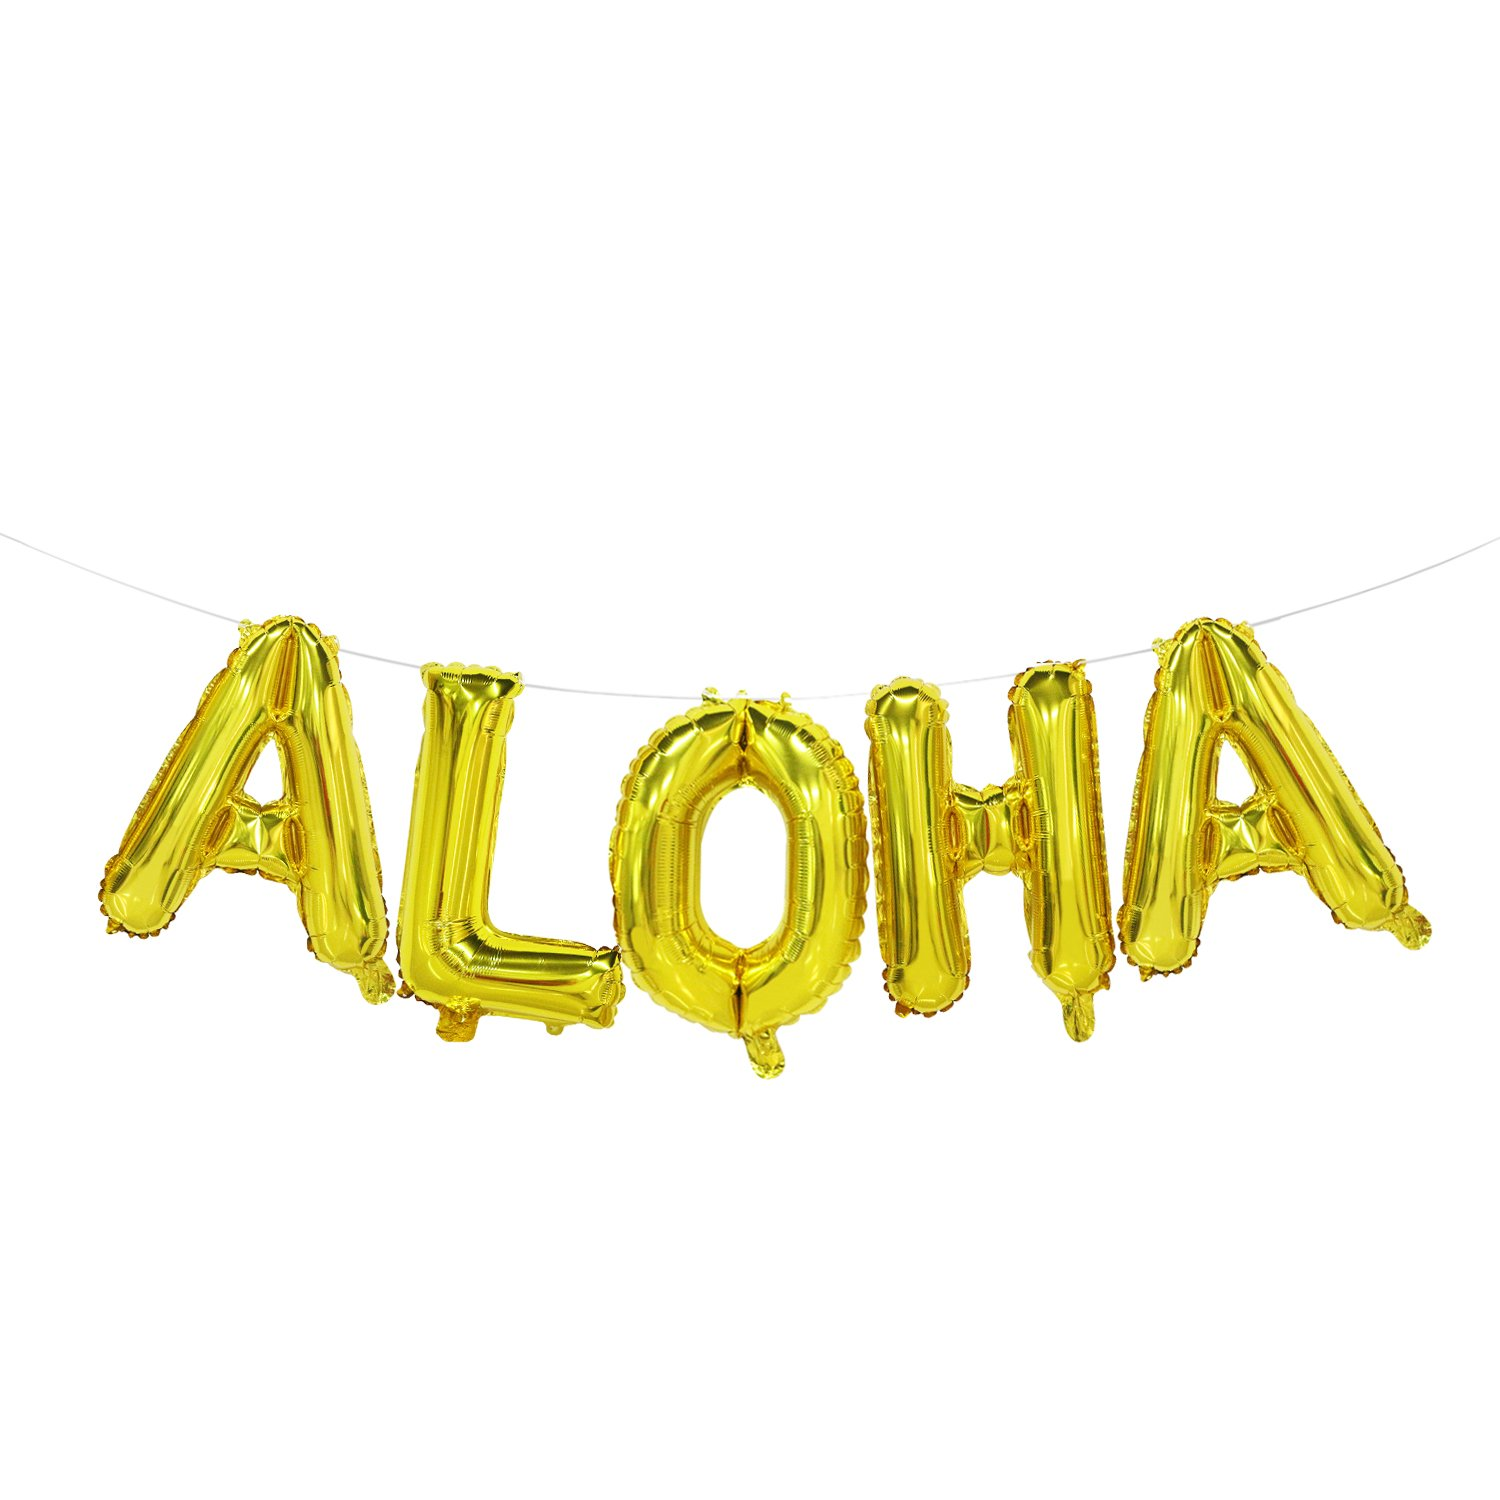 Beach Party Gold Aloha Balloons 16inch Mosoan Hawaii Party Aloha Sign for Summer Party Tropical Party Pool Party Aloha Decorations for Party